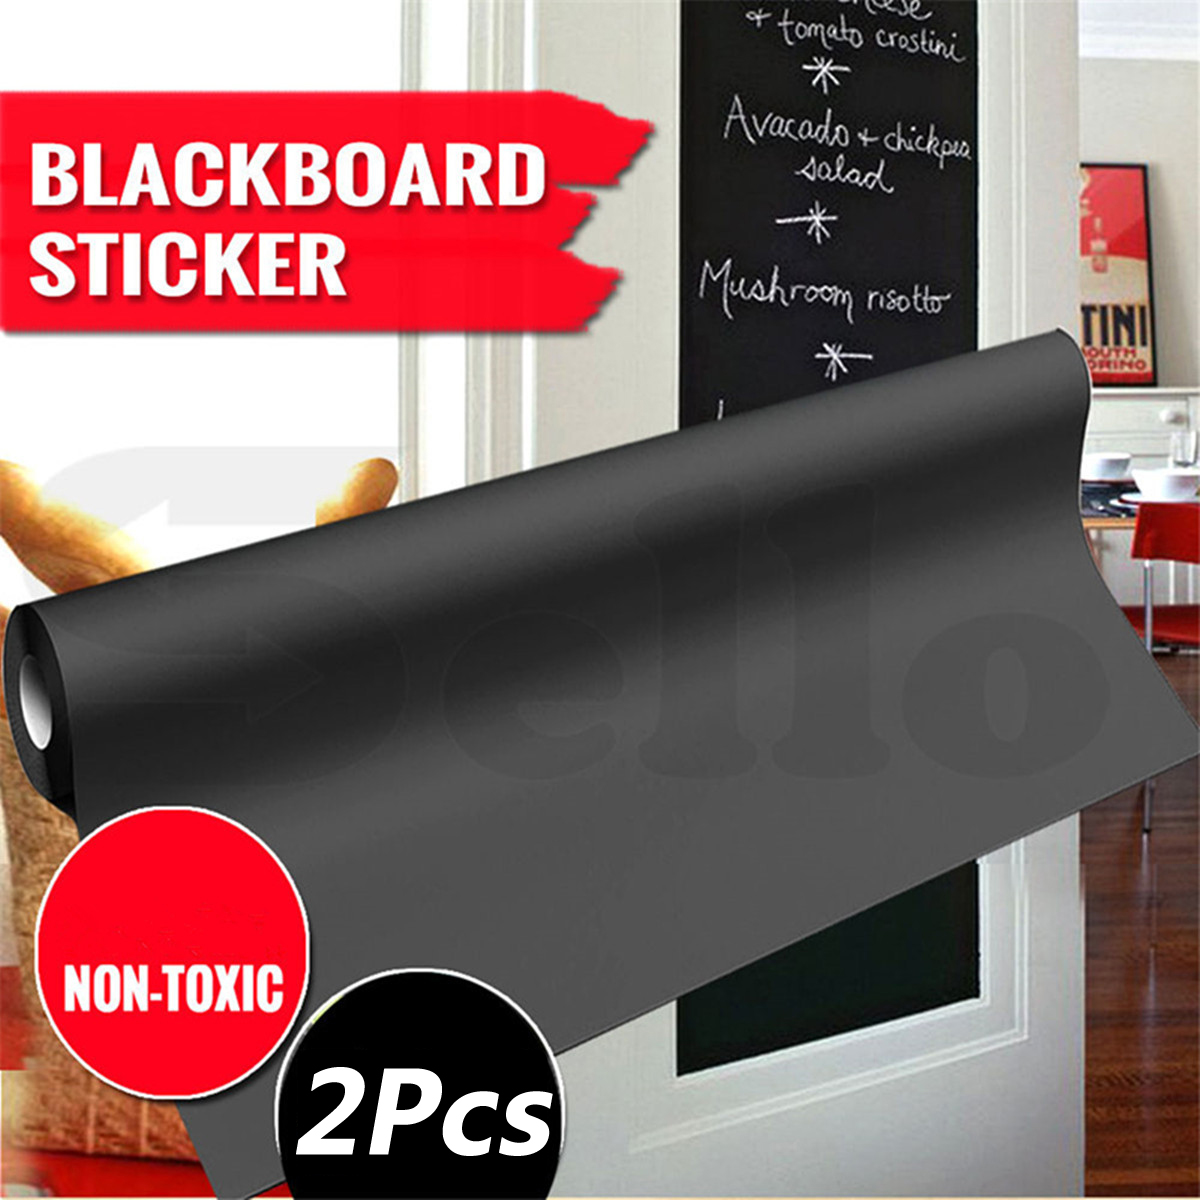 2Pcs 200CMX60CM Blackboard Sticker Self-Adhesive Wall Sticker Wall Paper Chalkboard Contact Paper For School ... by